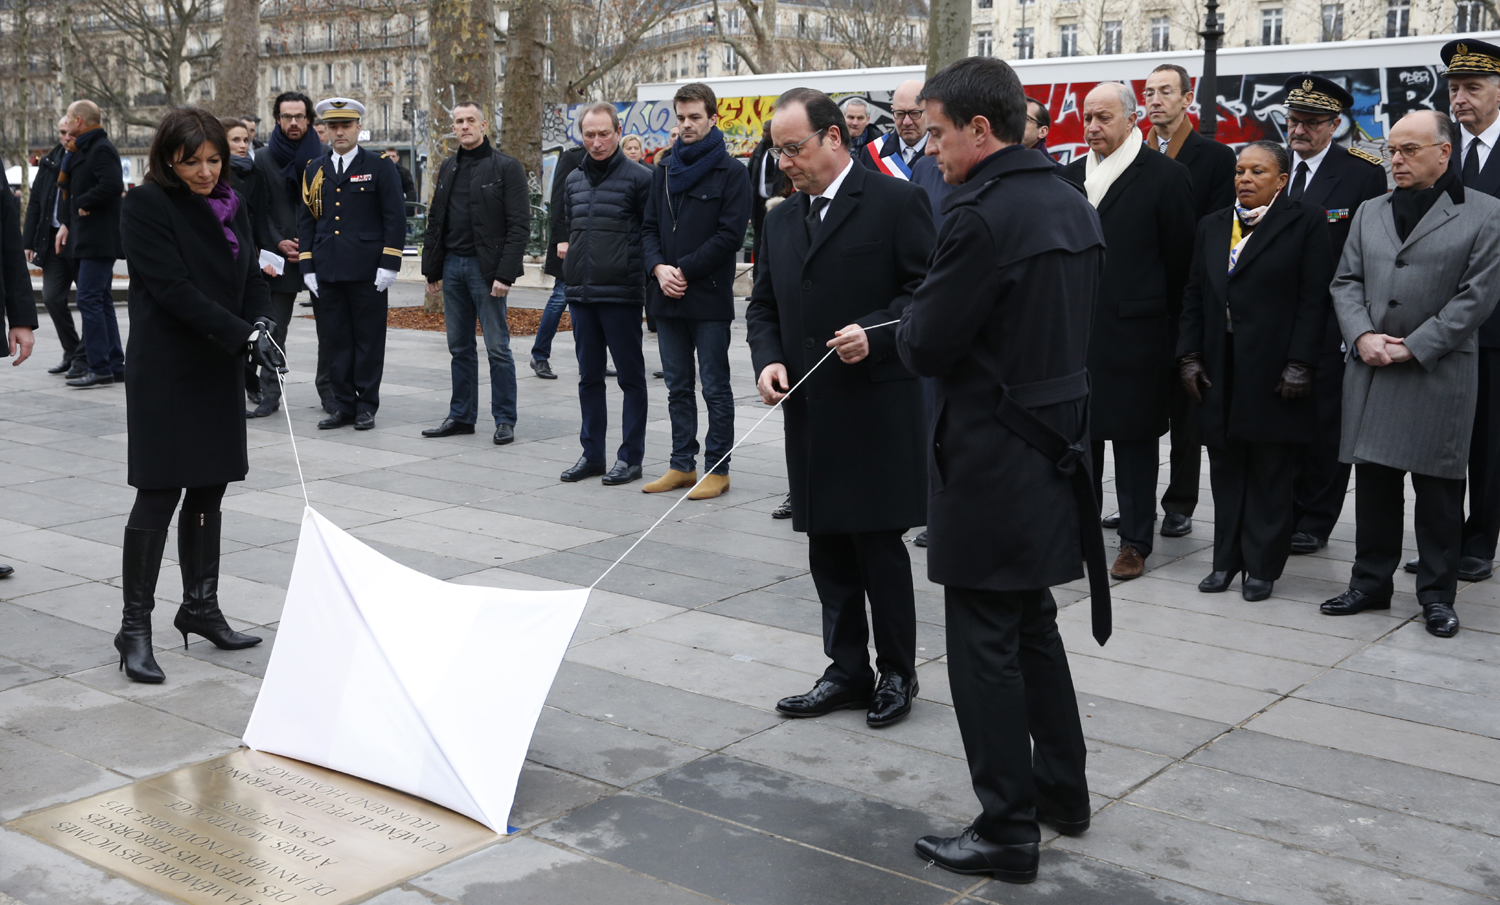 French President Francois Hollande (C), Prime Minister Manuel Valls (R) and Paris Mayor Anne Hidalgo (L) unveil a commemorative plaque during a ceremony held, on January 10, 2016 to mark a year since 1.6 million people thronged the French capital in a show of unity after attacks on the Charlie Hebdo newspaper and a Jewish supermarket. Just as it was last year, the vast Place de la Republique will be the focus of the gathering as people reiterate their support for freedom of expression and remember the other victims of what would become a year of jihadist outrages in France, culminating in the November 13 coordinated shootings and suicide bombings that killed 130 people and were claimed by the Islamic State (IS) group. / AFP / POOL / PHILIPPE WOJAZER